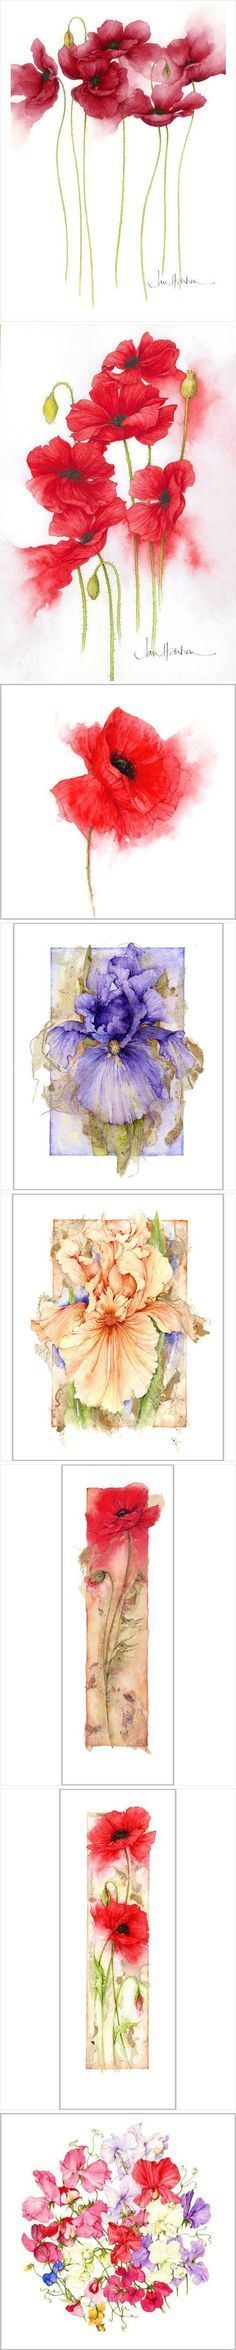 Jan Harbon's exquisite watercolours.